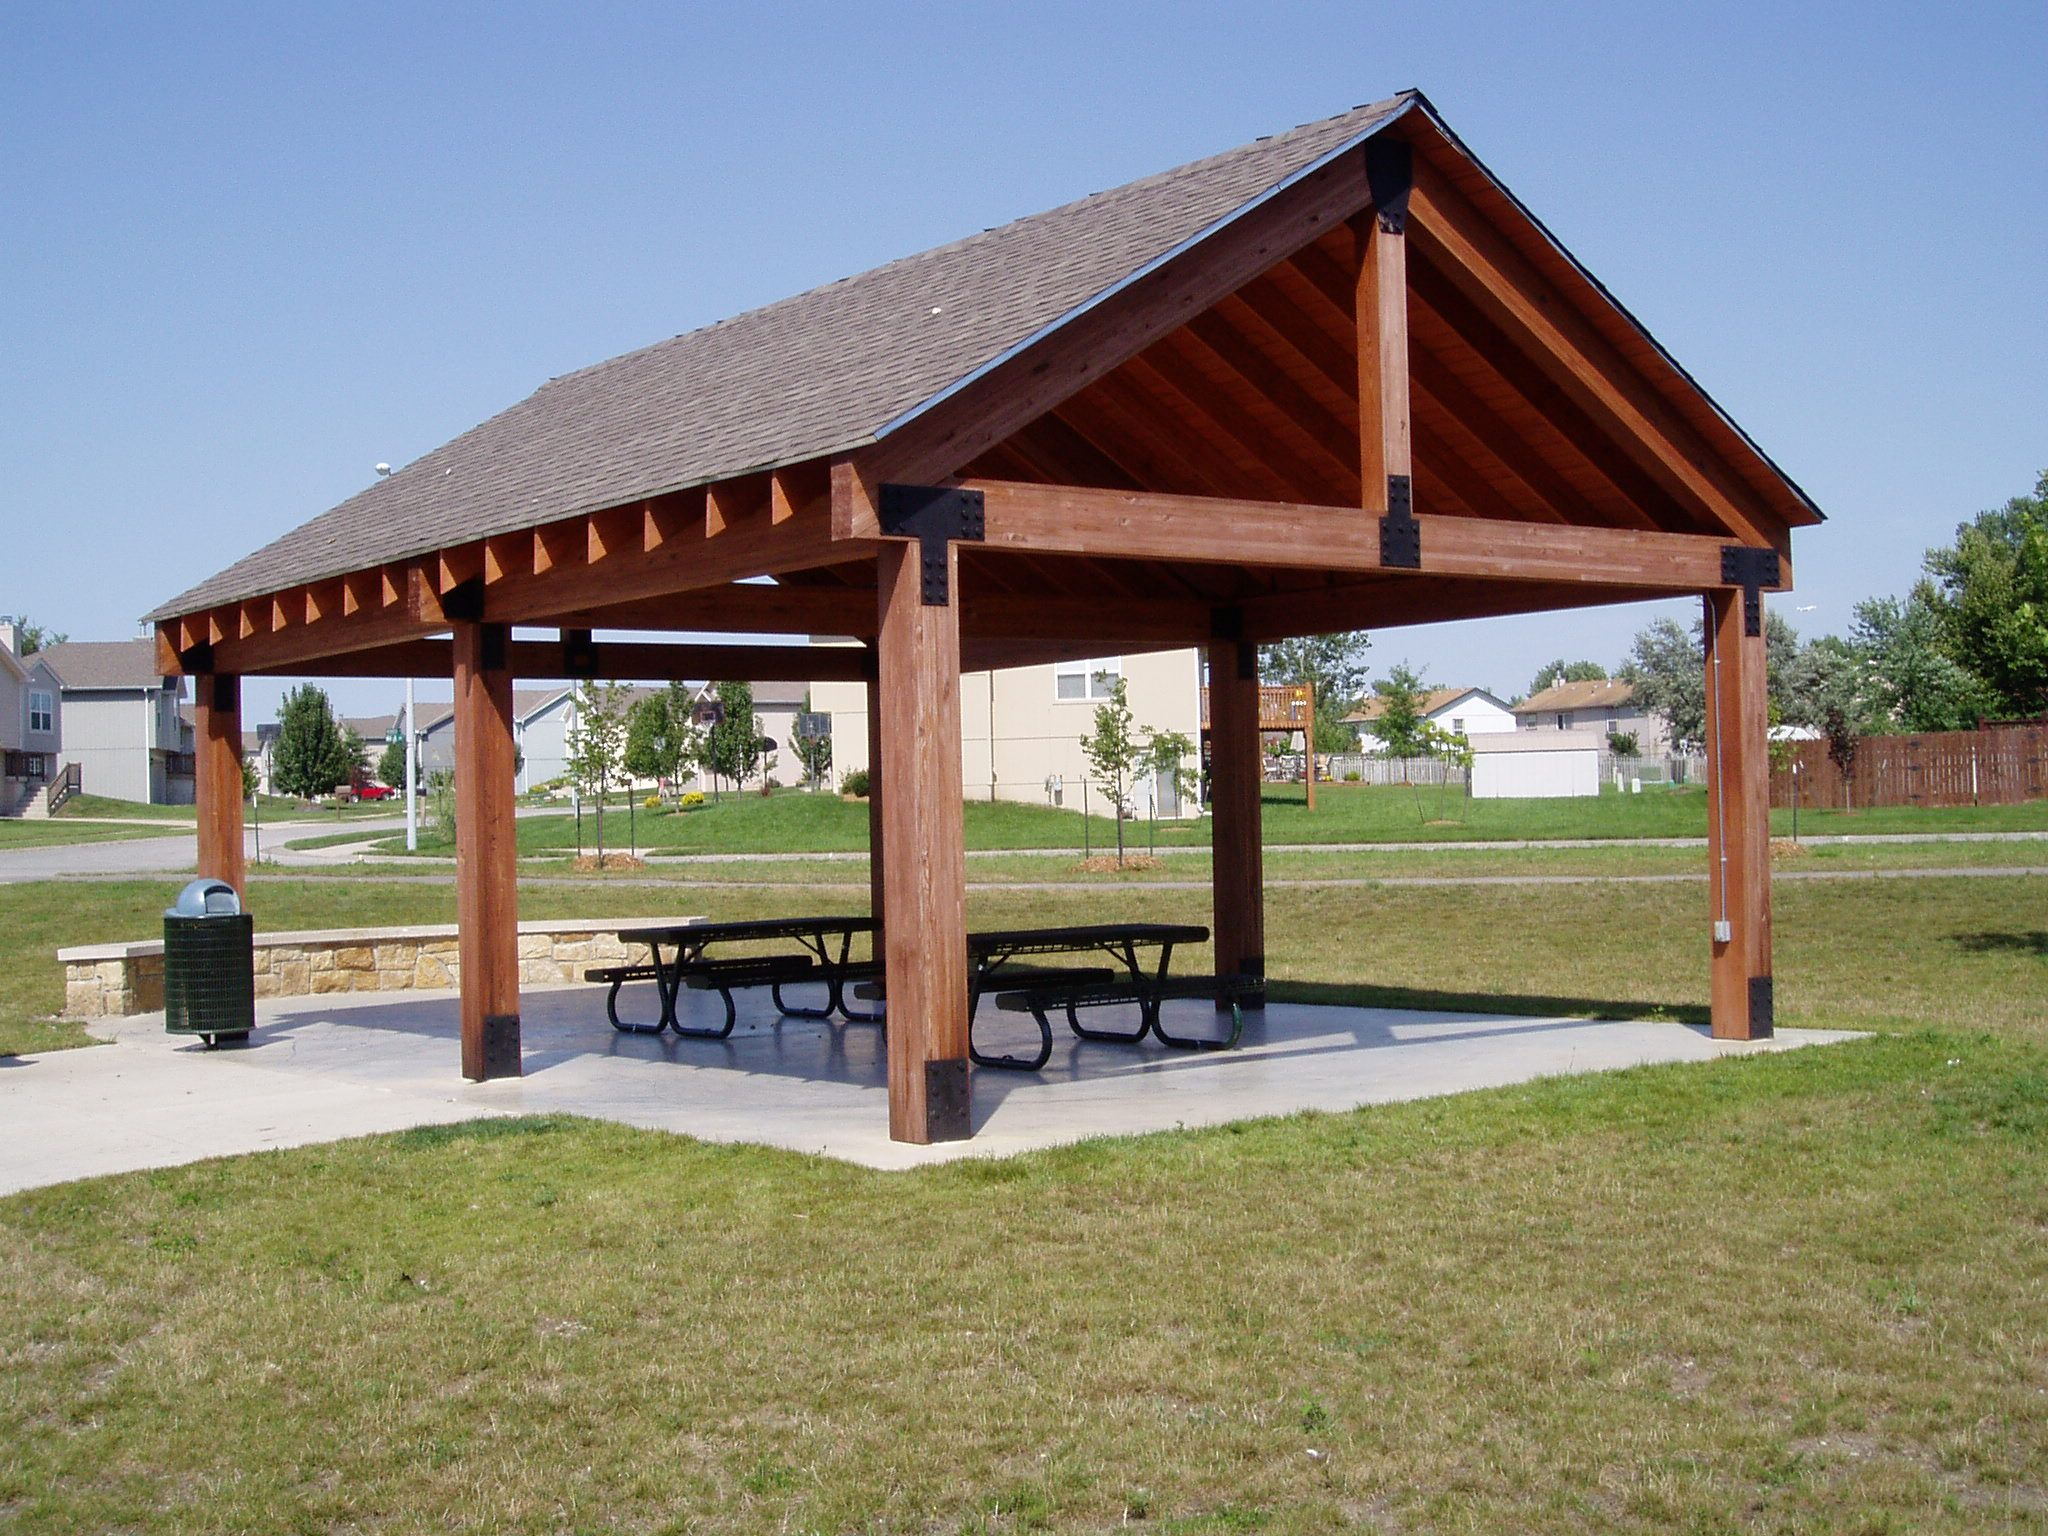 Picnic shelter plans winwood park city of gardner for Average cost to build a pavilion